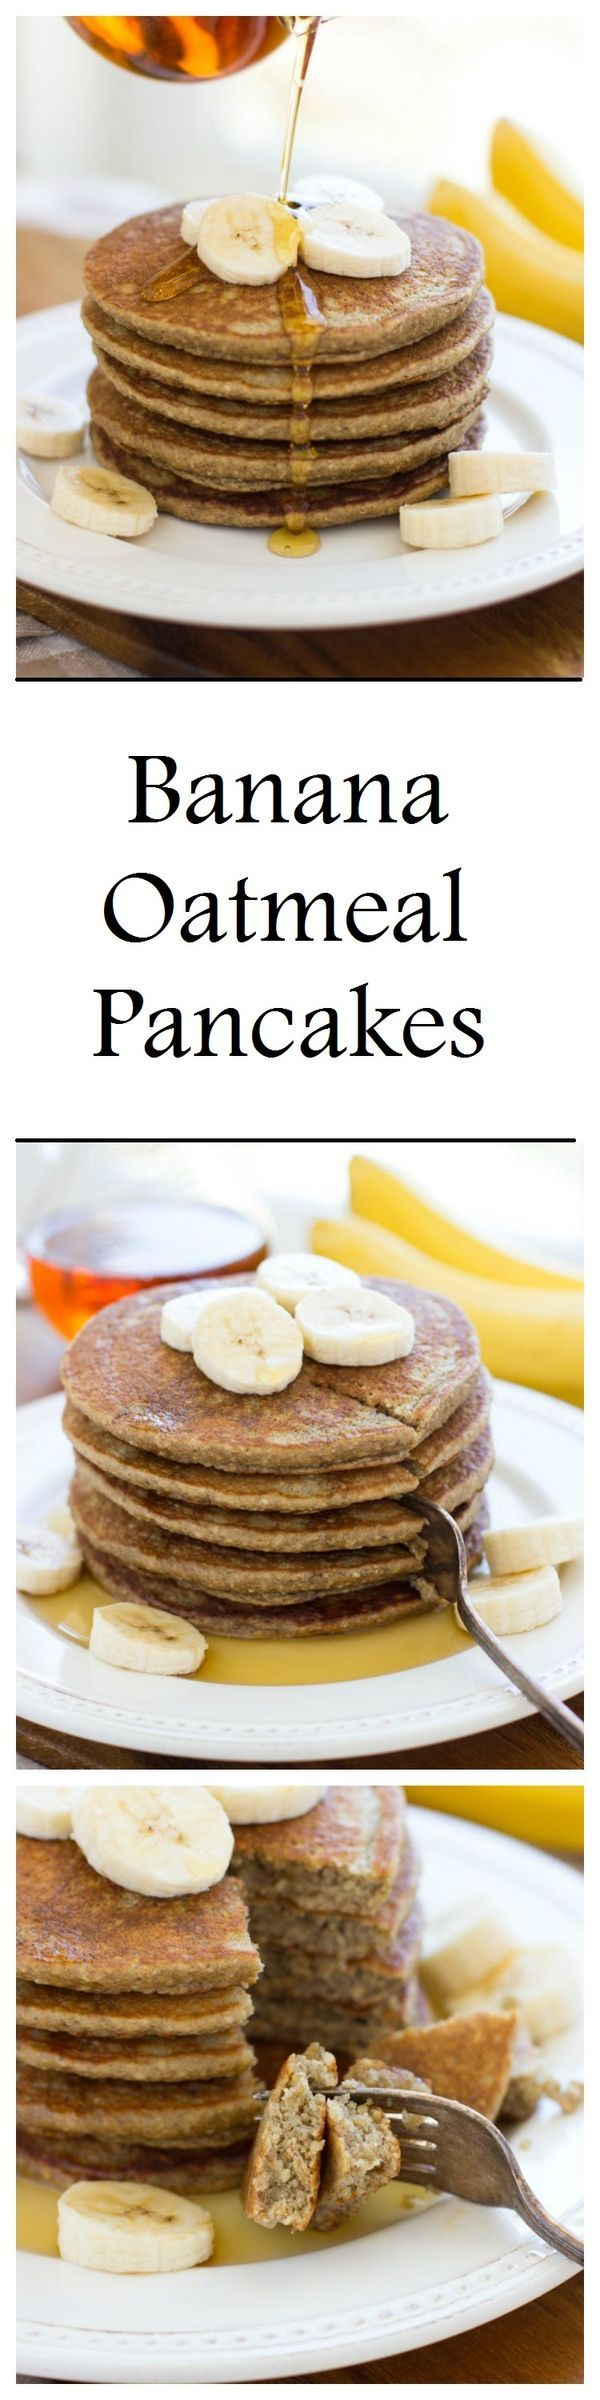 Banana Oatmeal Pancakes that are light, fluffy and refined sugar-free! They're made easy in a blender and are also gluten-free and dairy-free, plus use all clean eating ingredients. Pin this healthy breakfast recipe to try later.